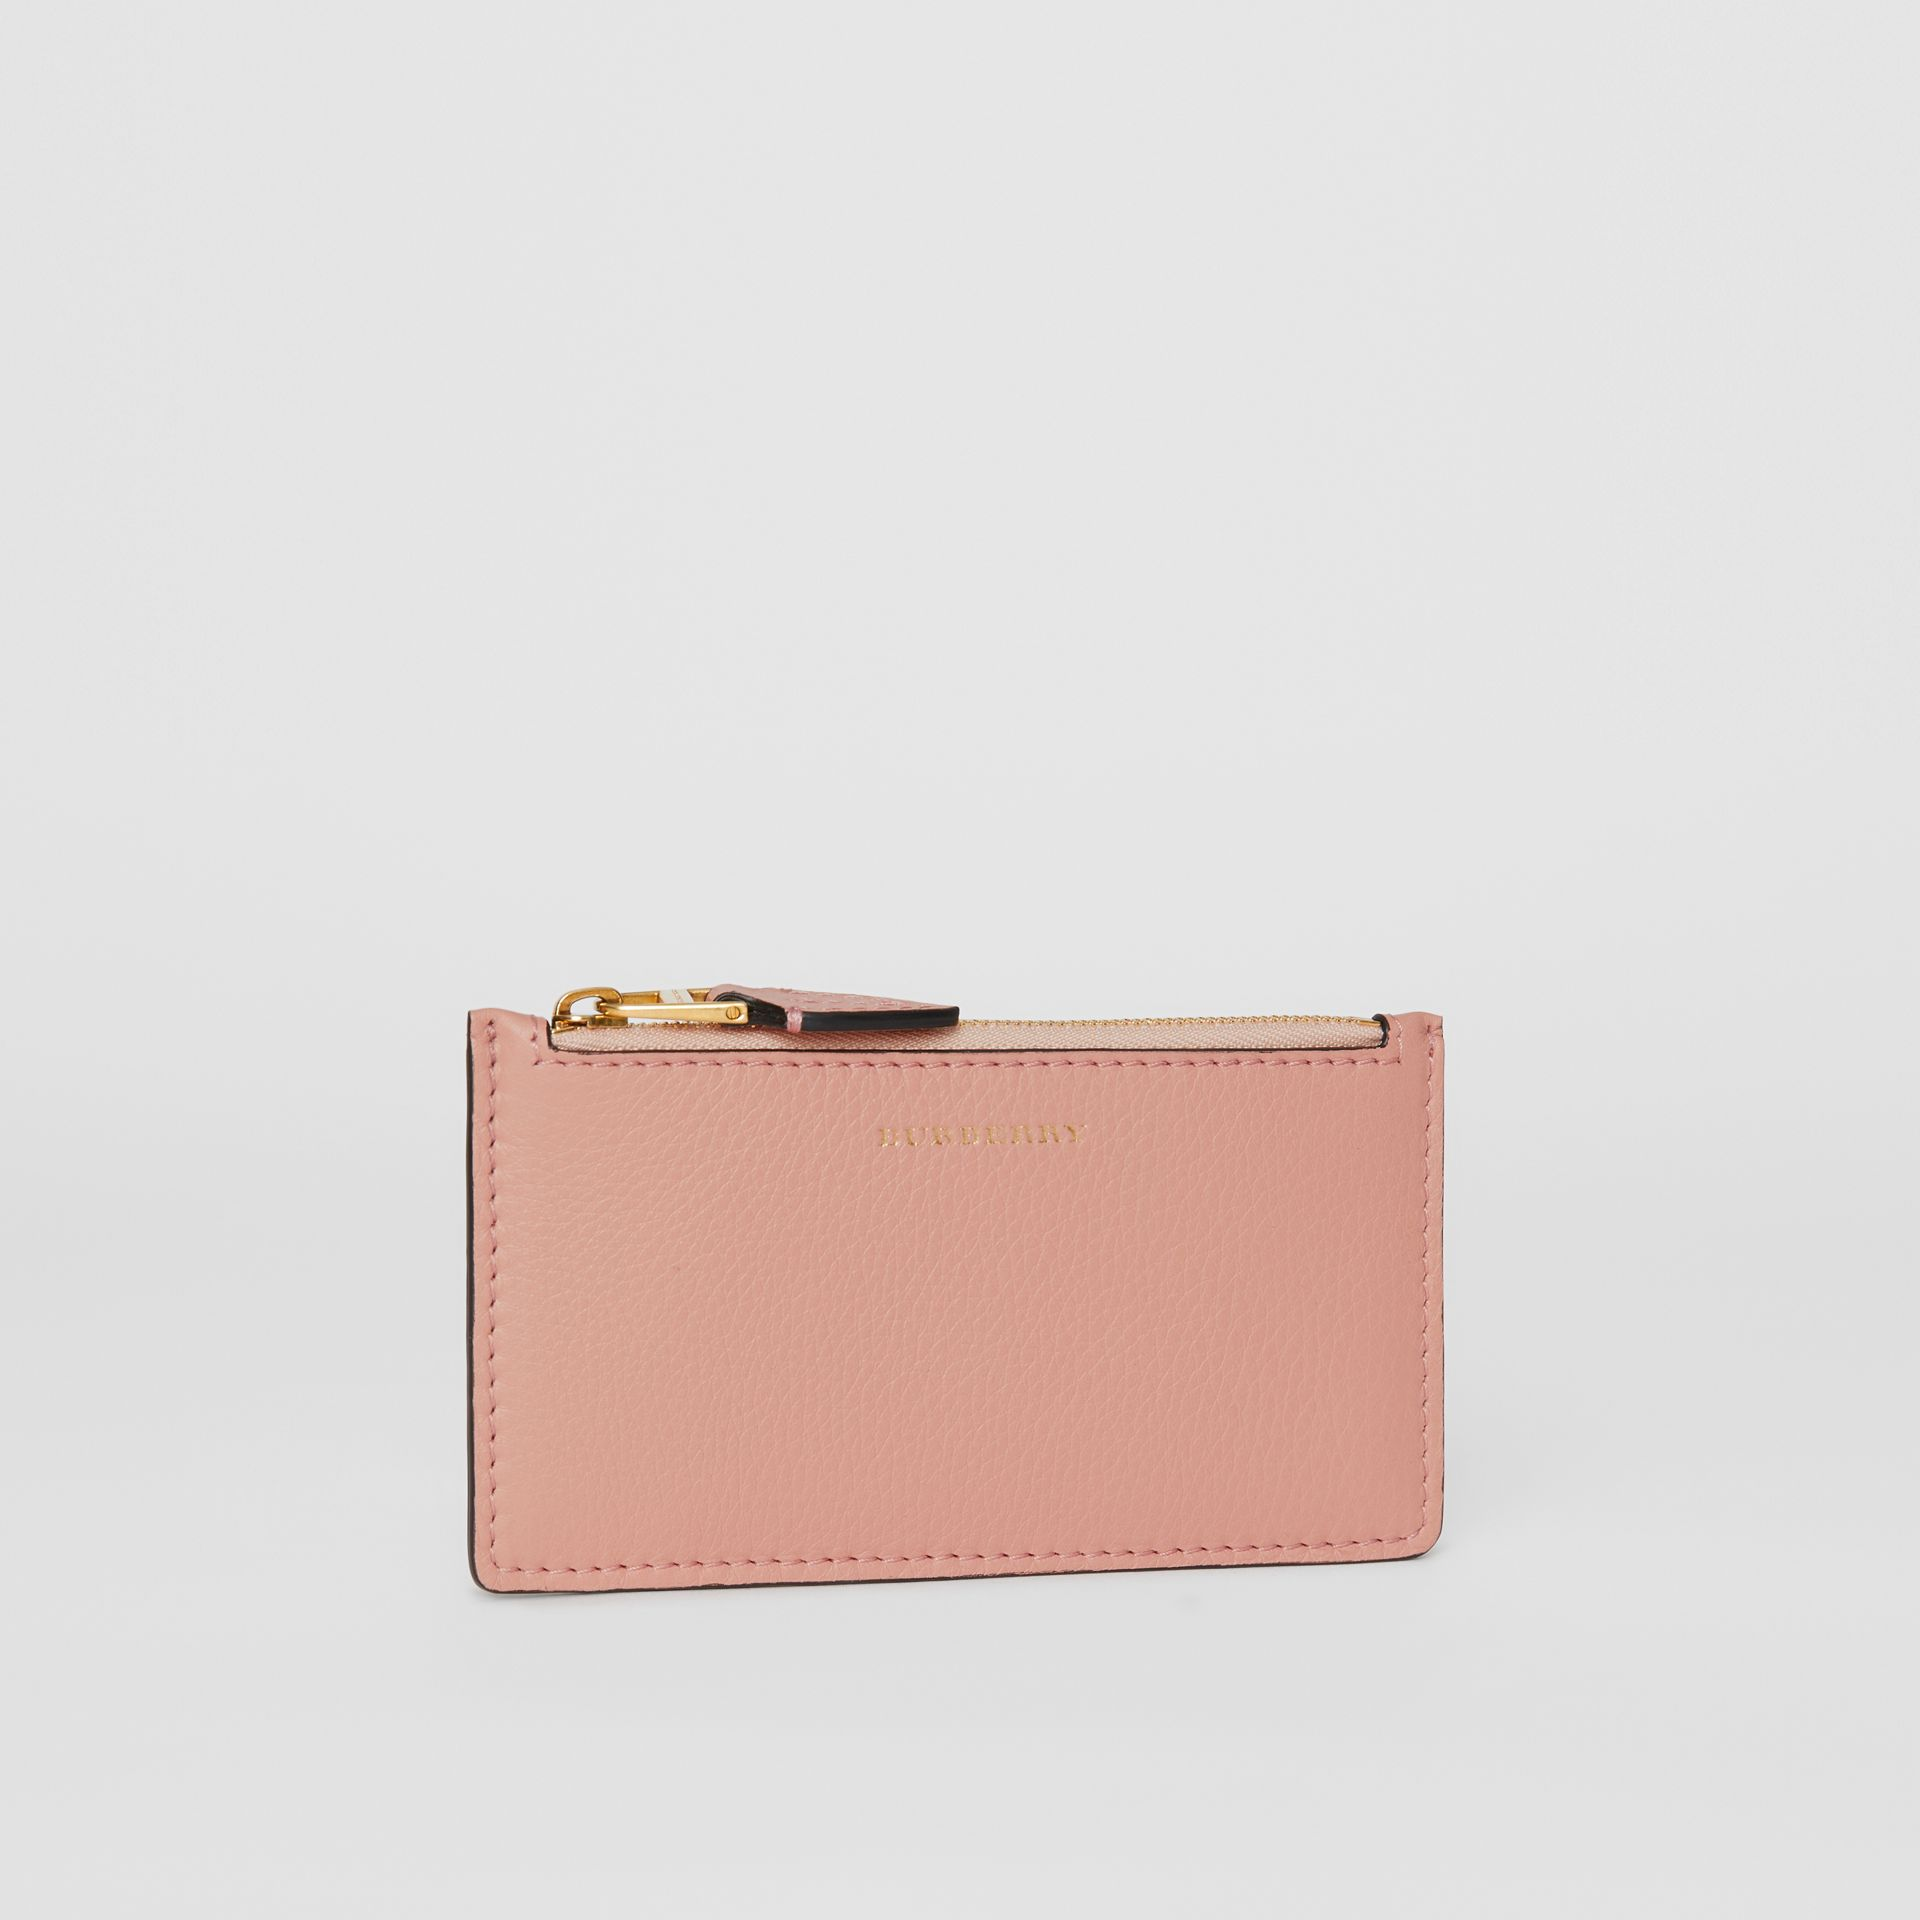 Porte-cartes zippé en cuir bicolore (Rose Platiné) - Femme | Burberry - photo de la galerie 3